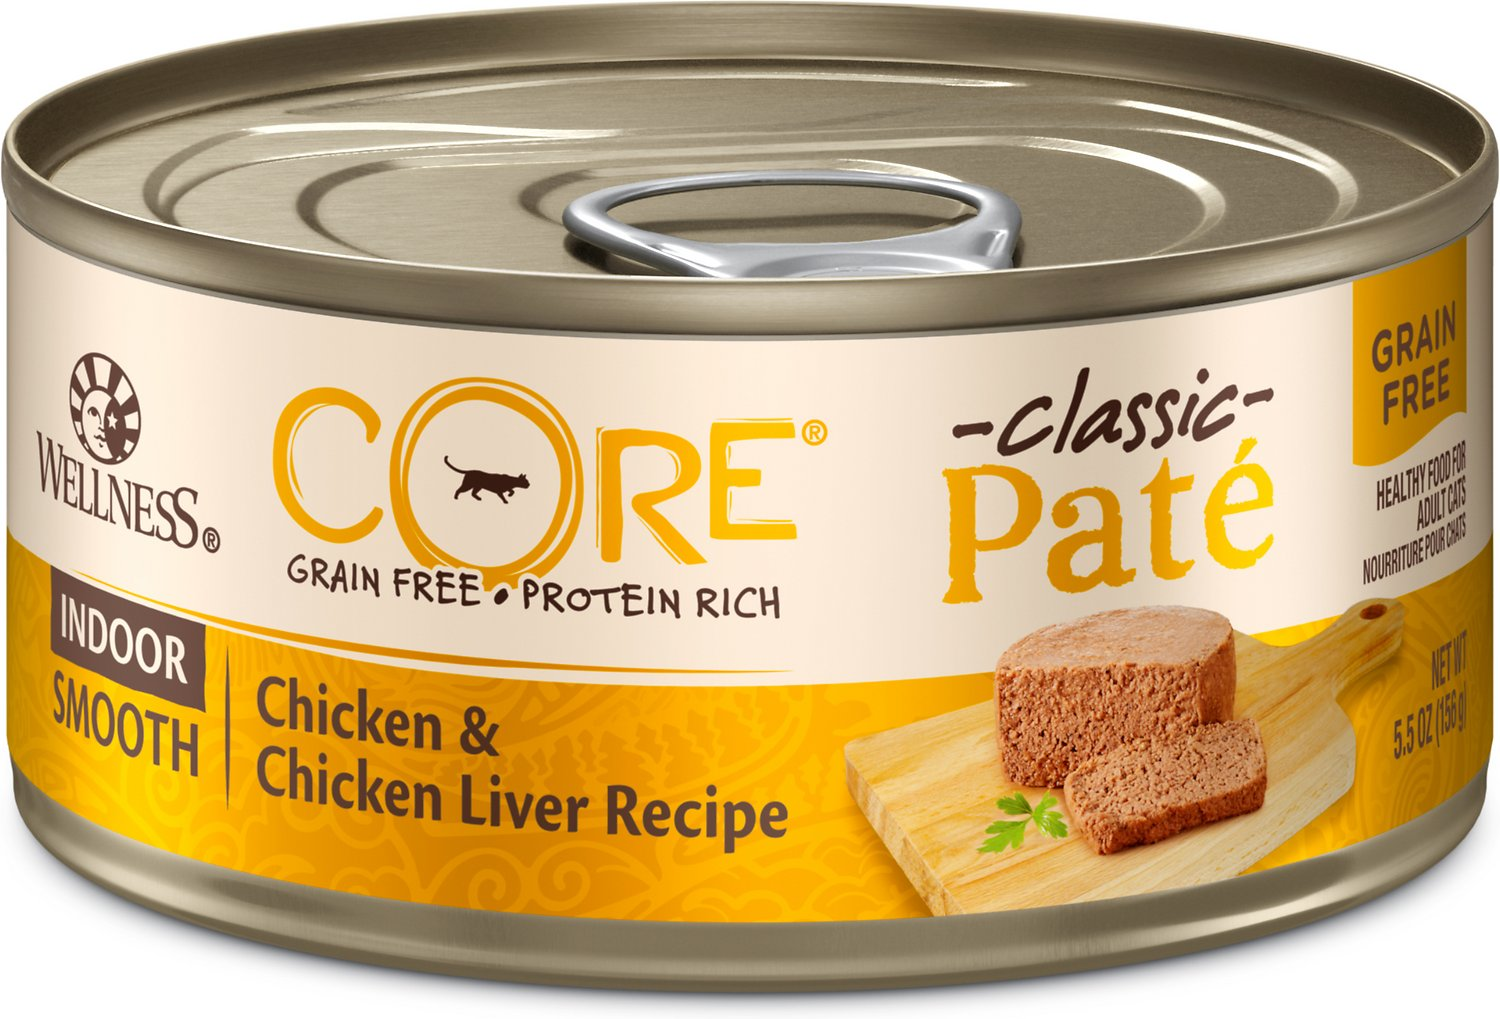 Wellness Core Indoor Canned Cat Food Reviews